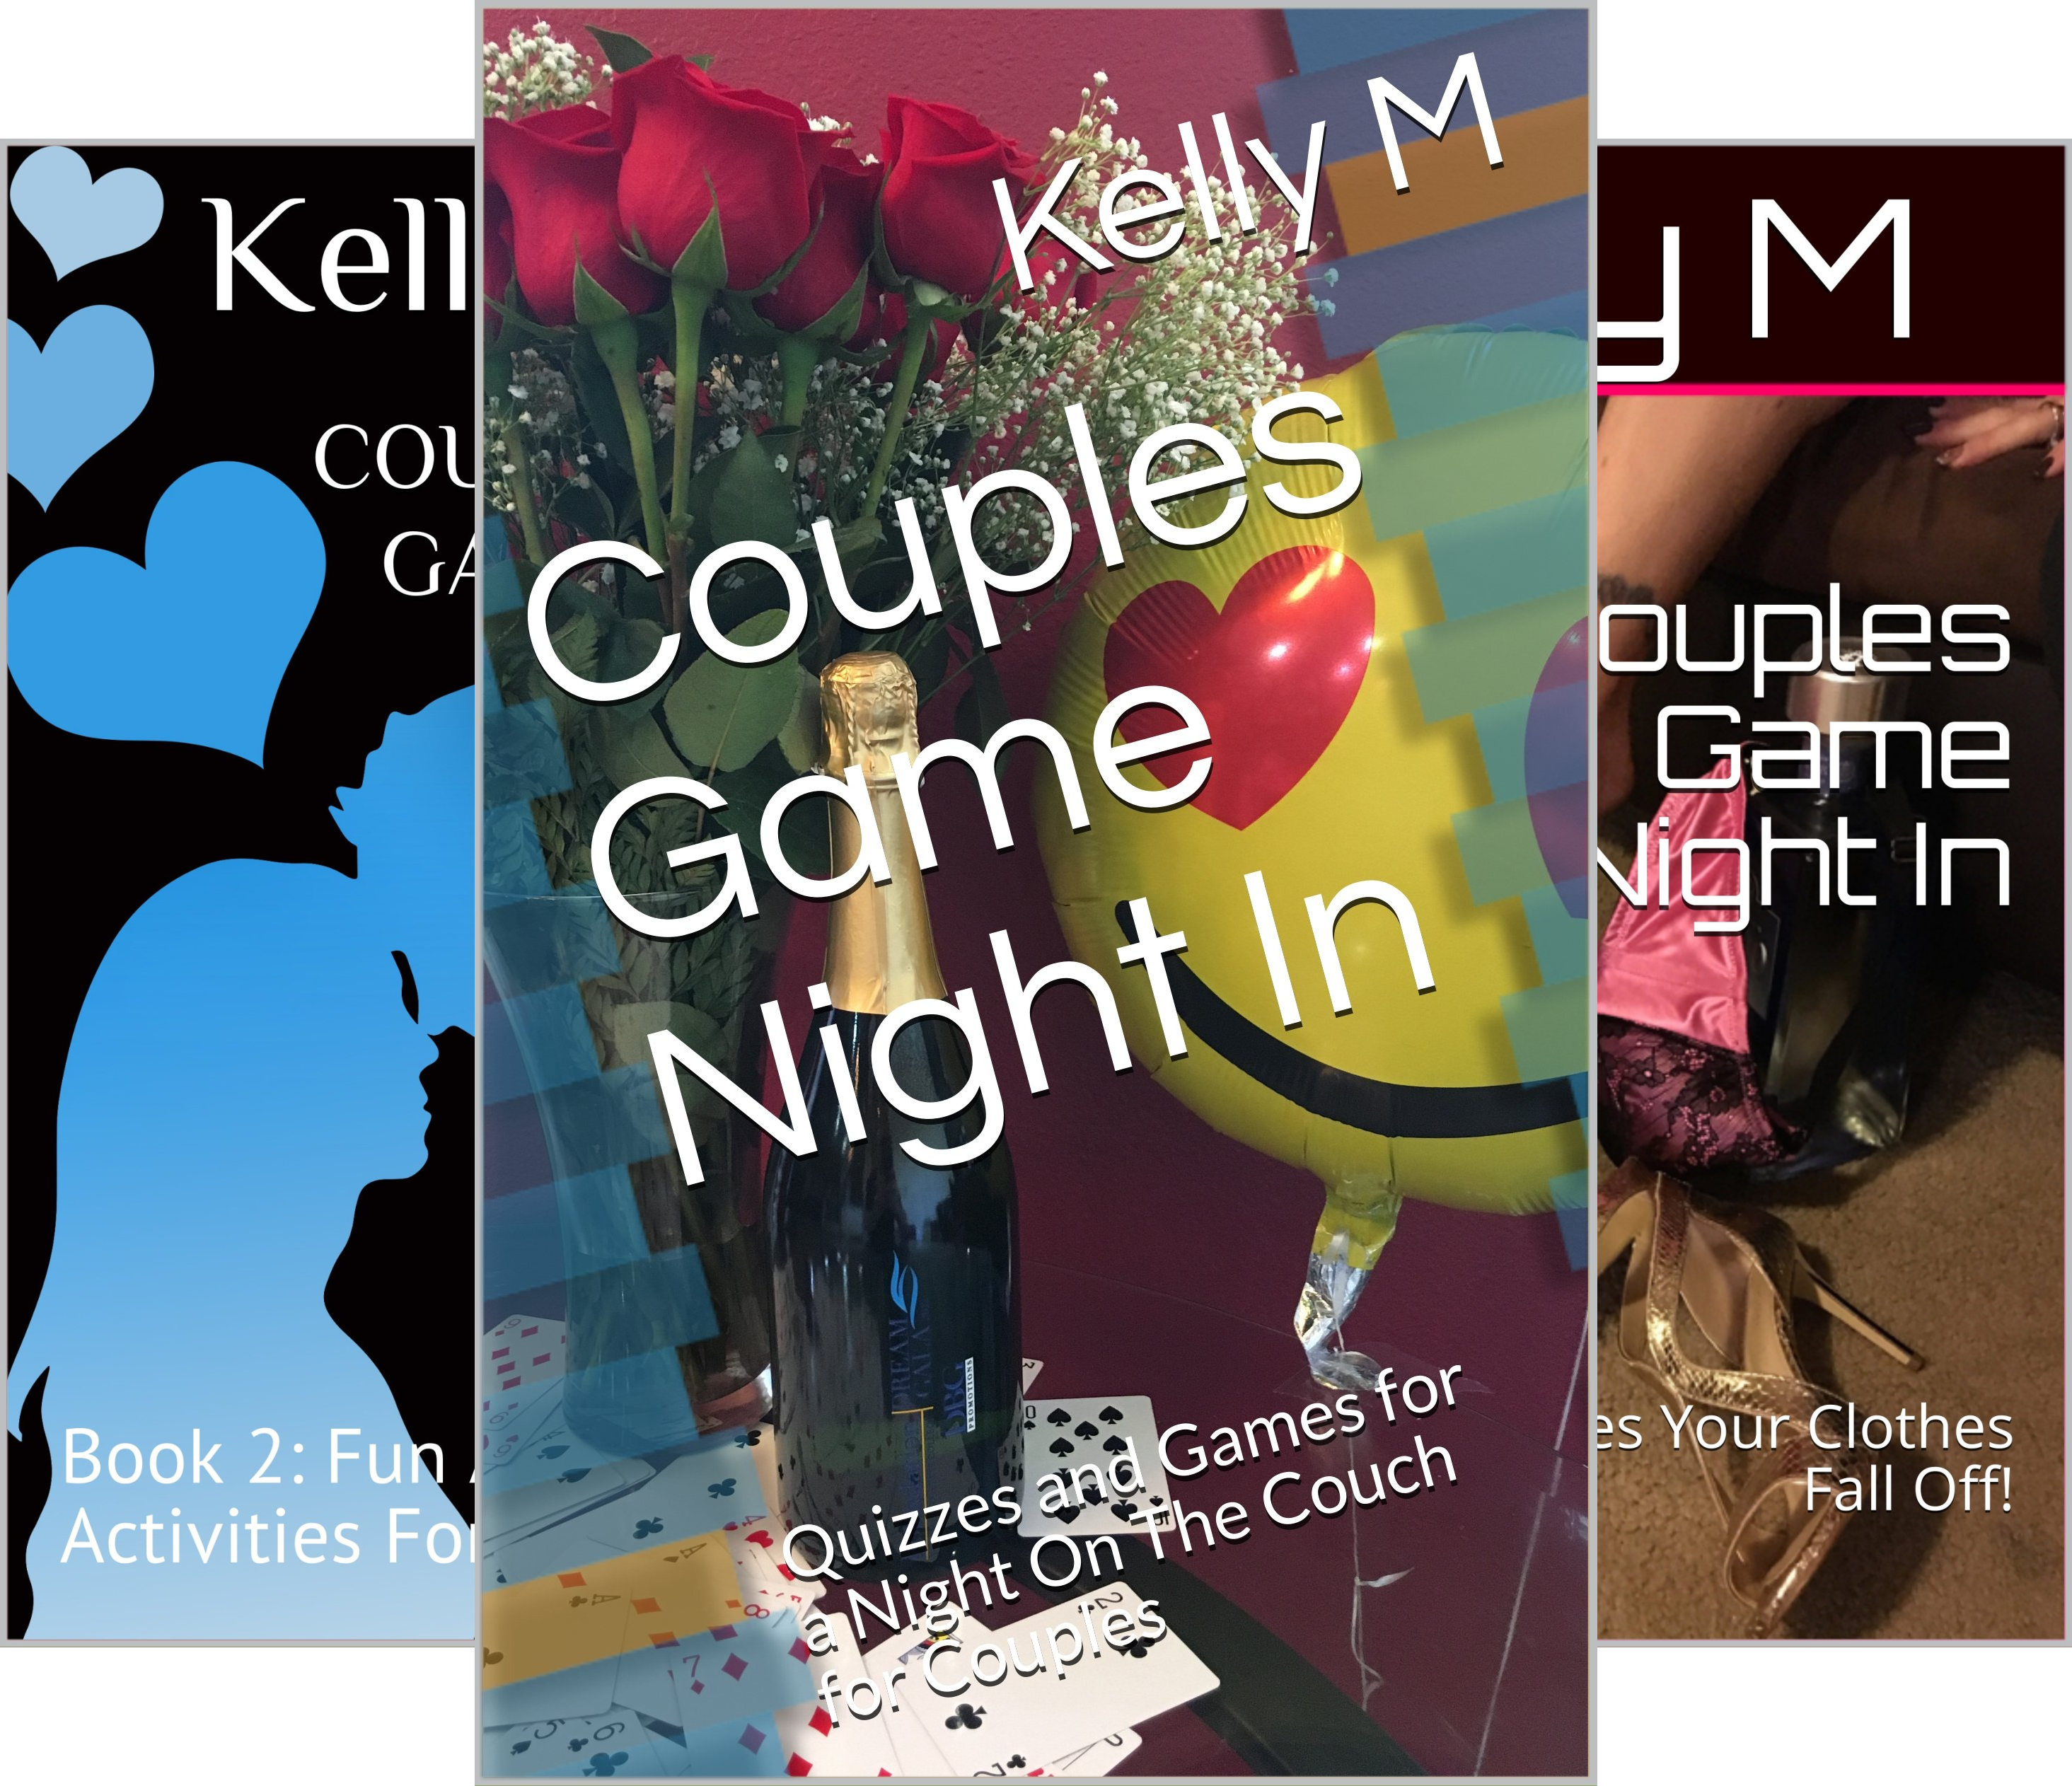 Couples Game Night In (10 Book Series)